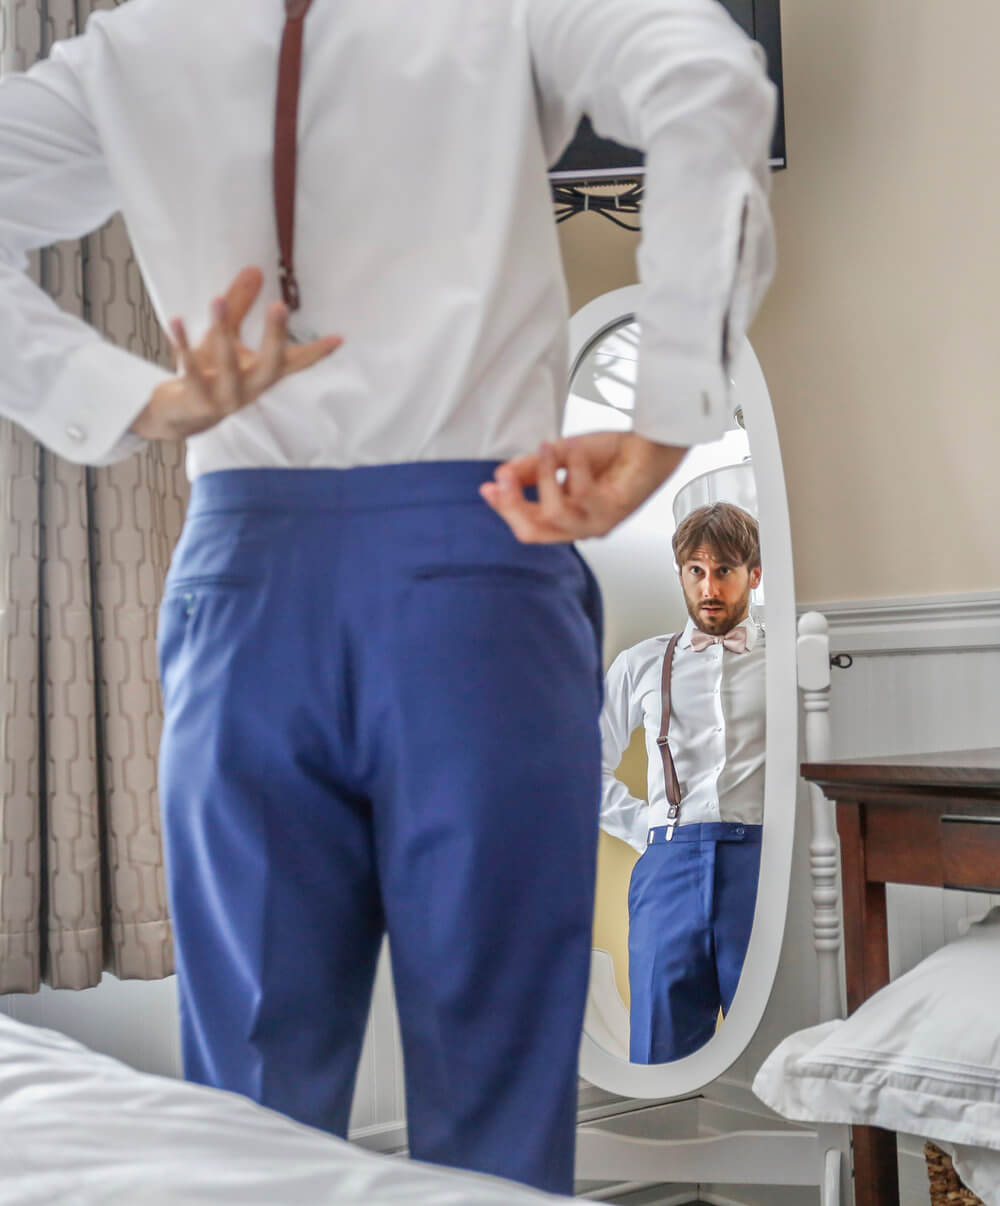 Wedding photography of the groom getting ready for the ceremony in his hotel room in Maine